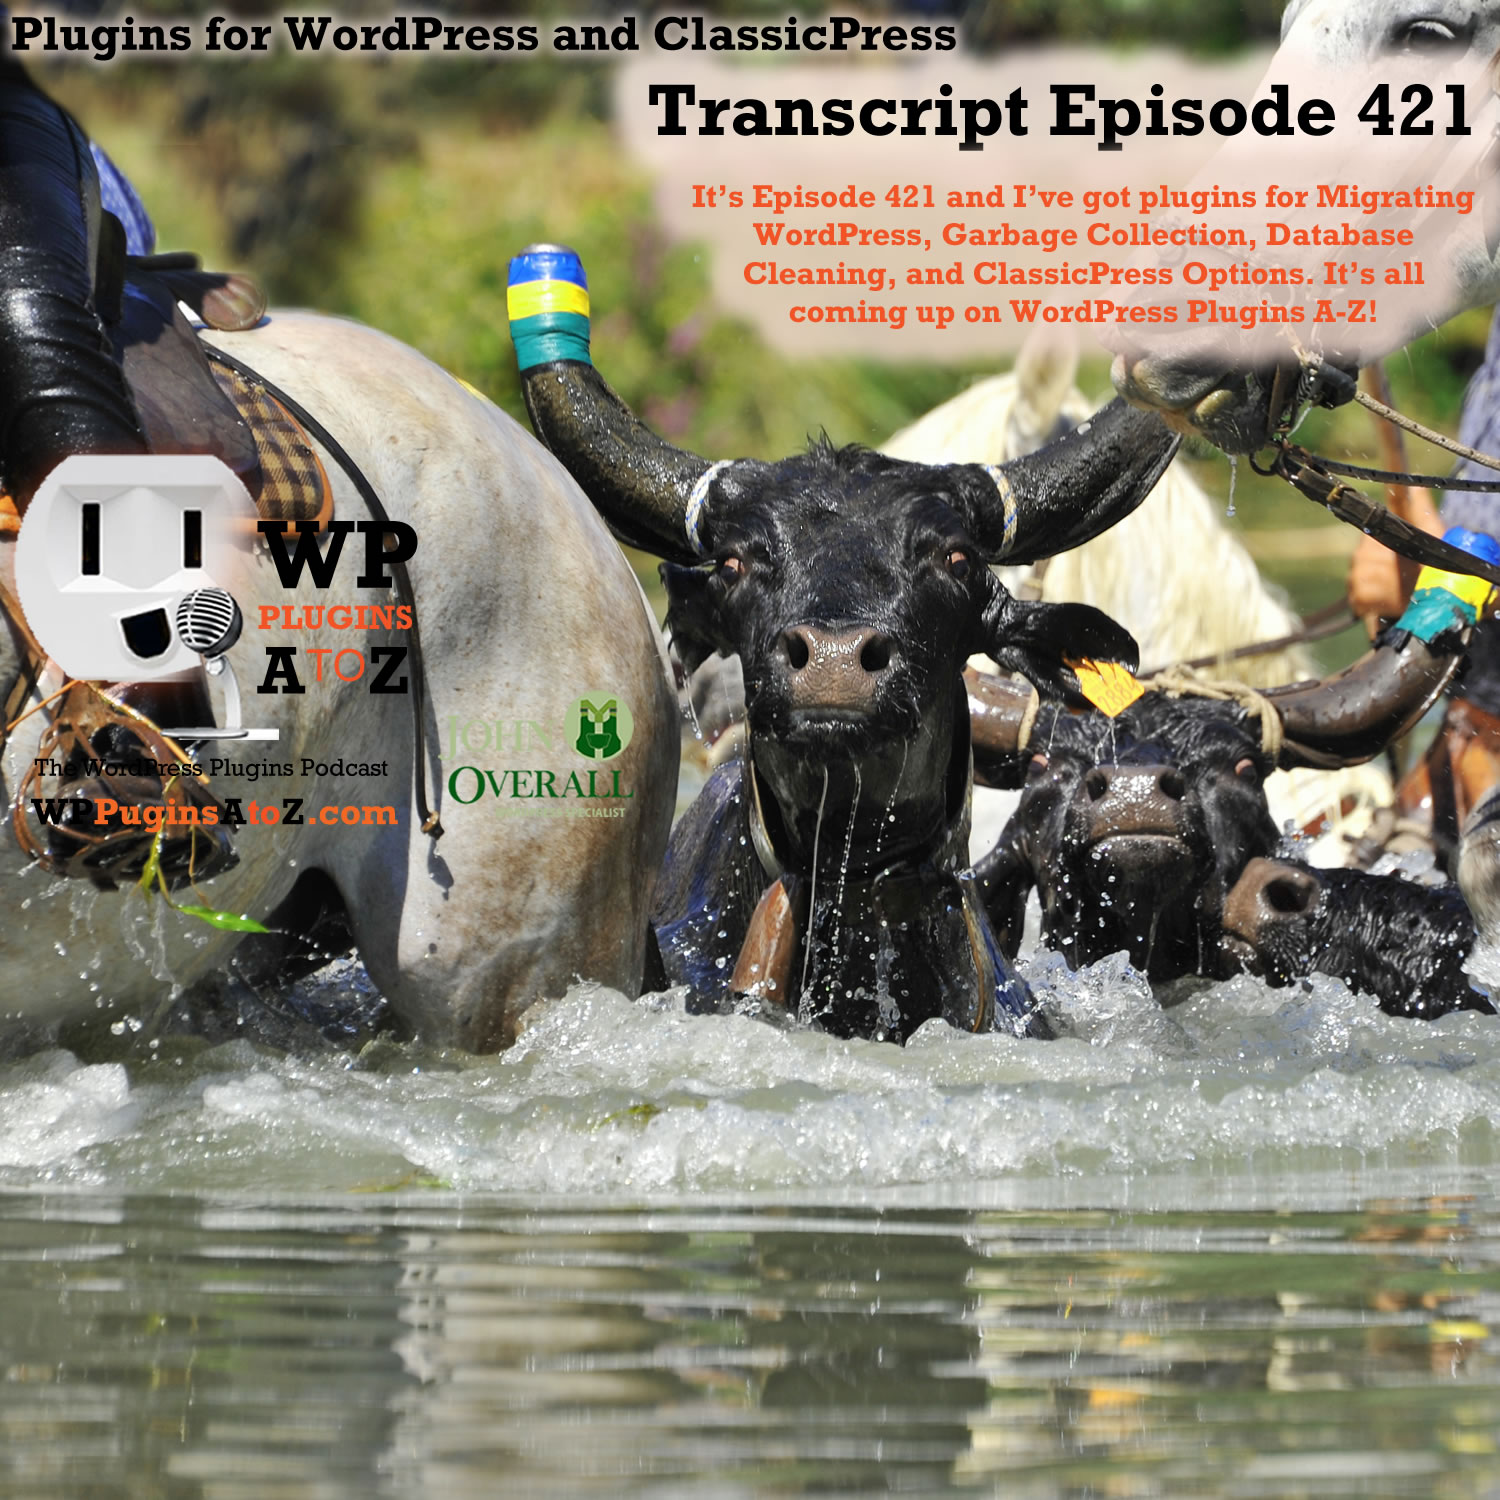 It's Episode 421 and I've got plugins for Migrating WordPress, Garbage Collection, Database Cleaning, and ClassicPress Options, all coming up on WordPress Plugins A-Z!